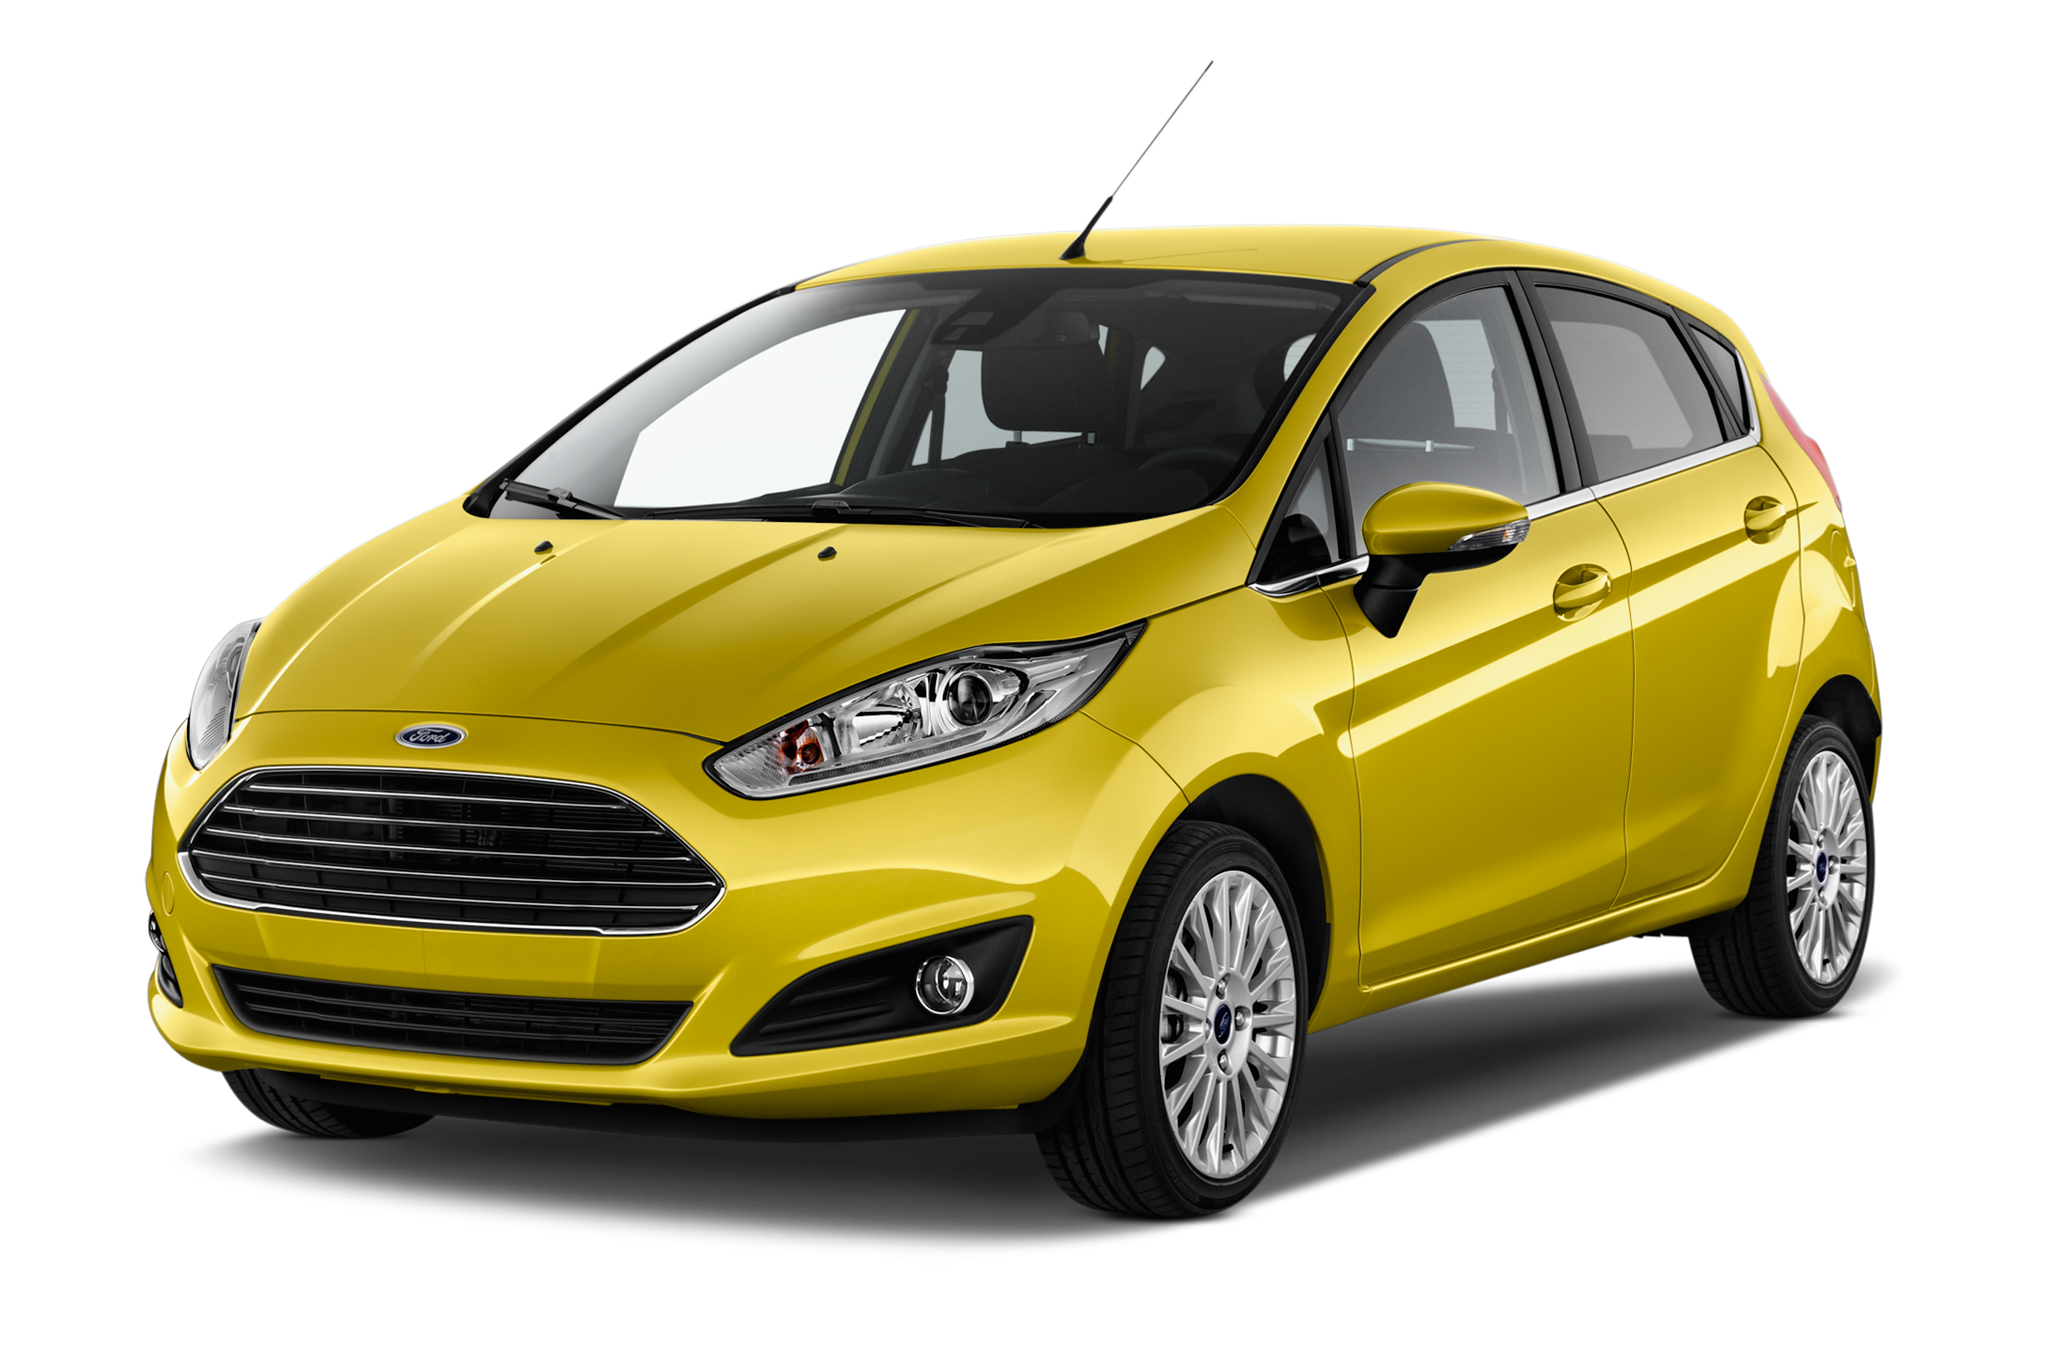 2019 Ford Falcon New Car Specs And Price 2020 Power Wheels Dune Racer Wiring Diagram Fiesta St Concept Photos Catalog 2018